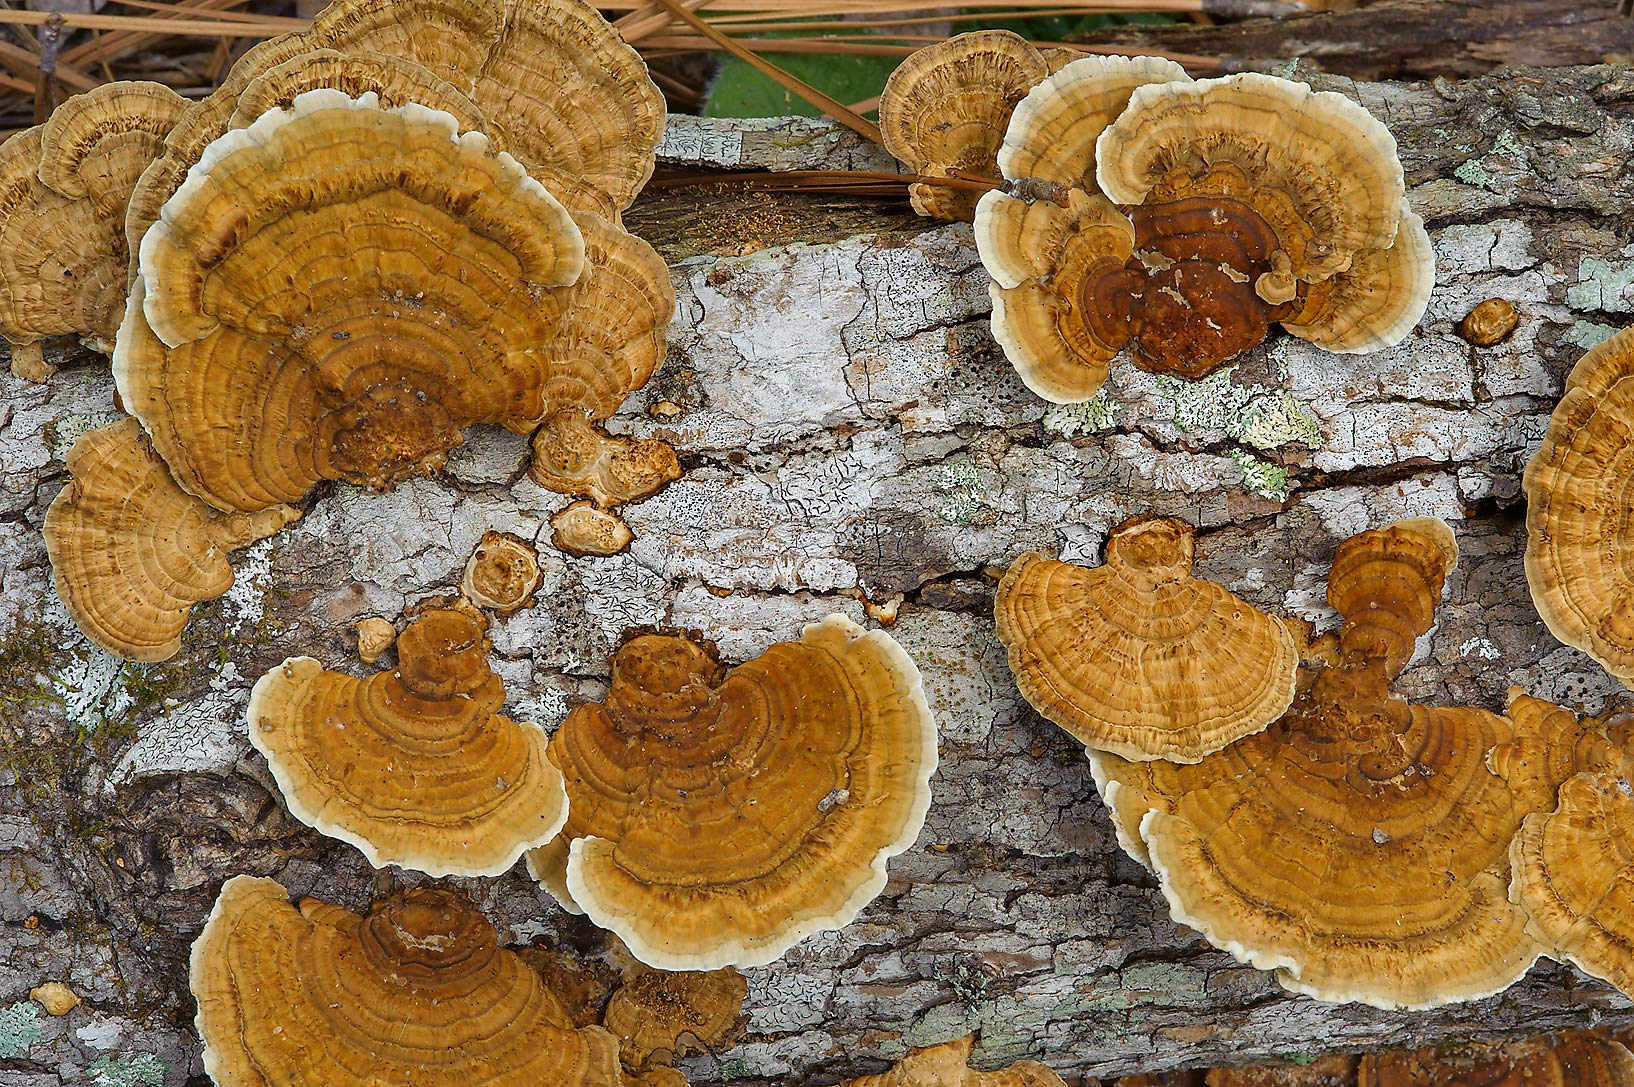 Polypore mushrooms Gloeophyllum striatum on a...National Forest. Richards, Texas